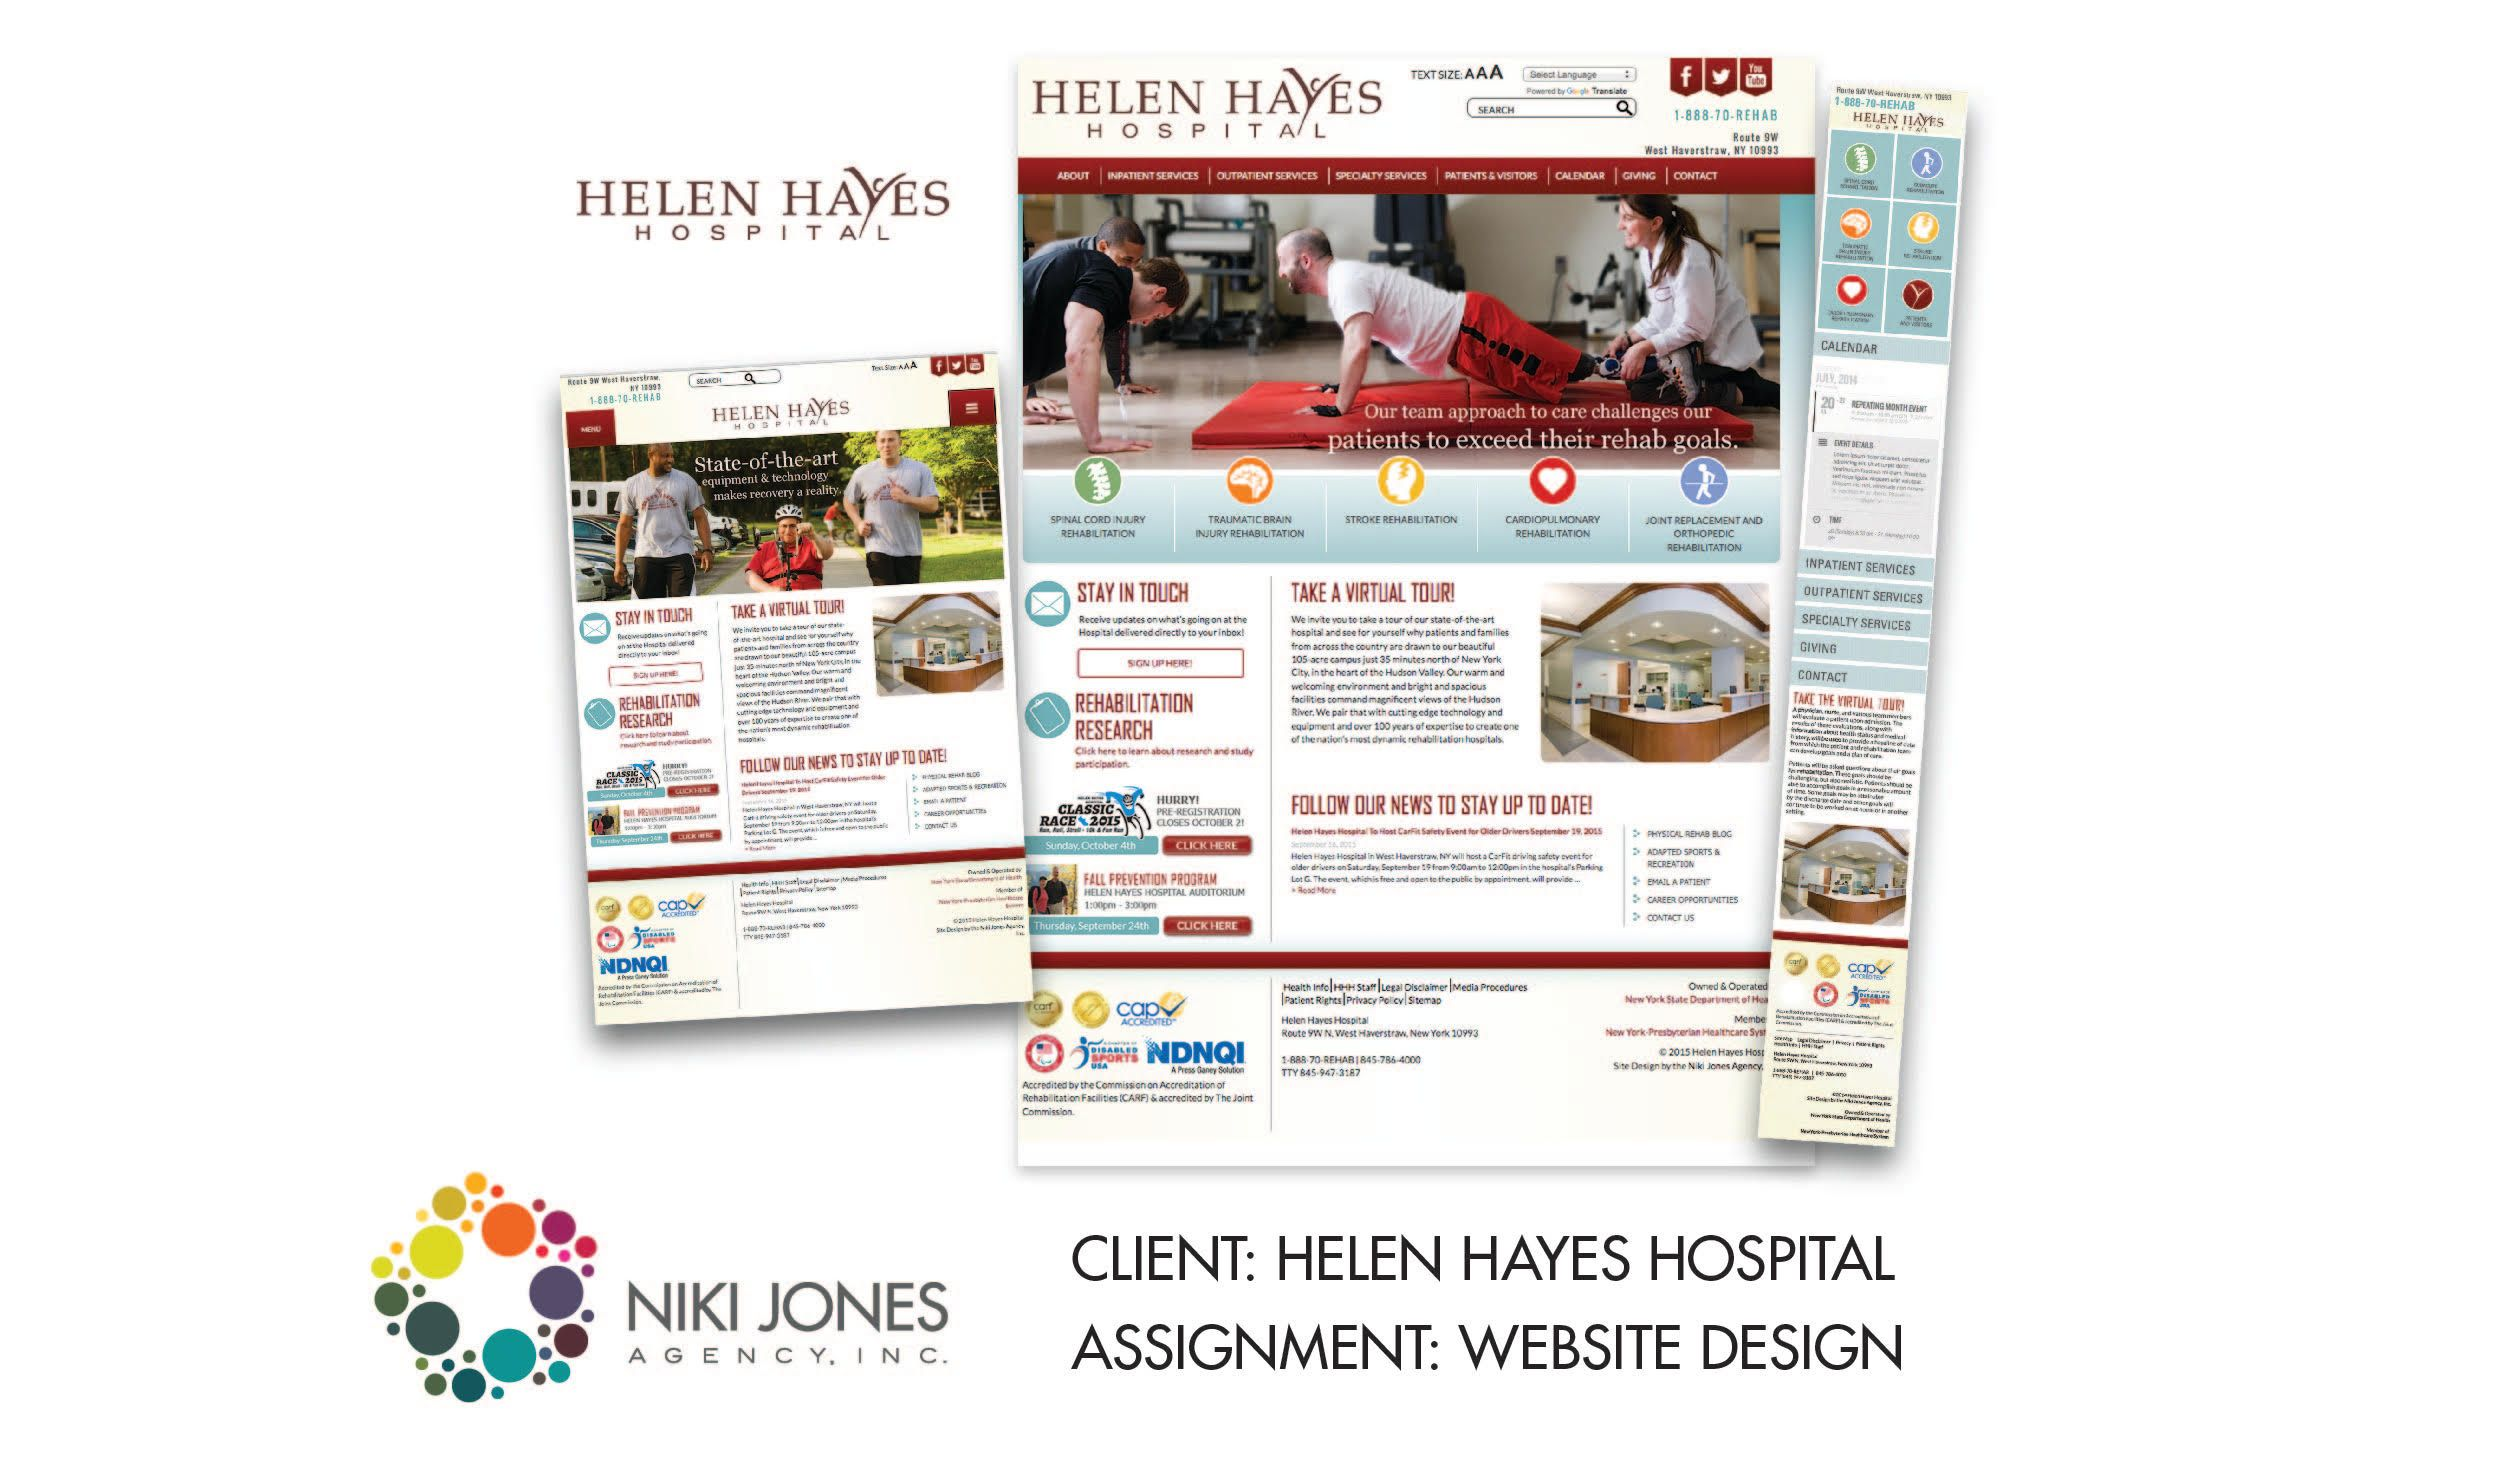 NJA Portfolio - Helen Hayes Hospital Featured Work